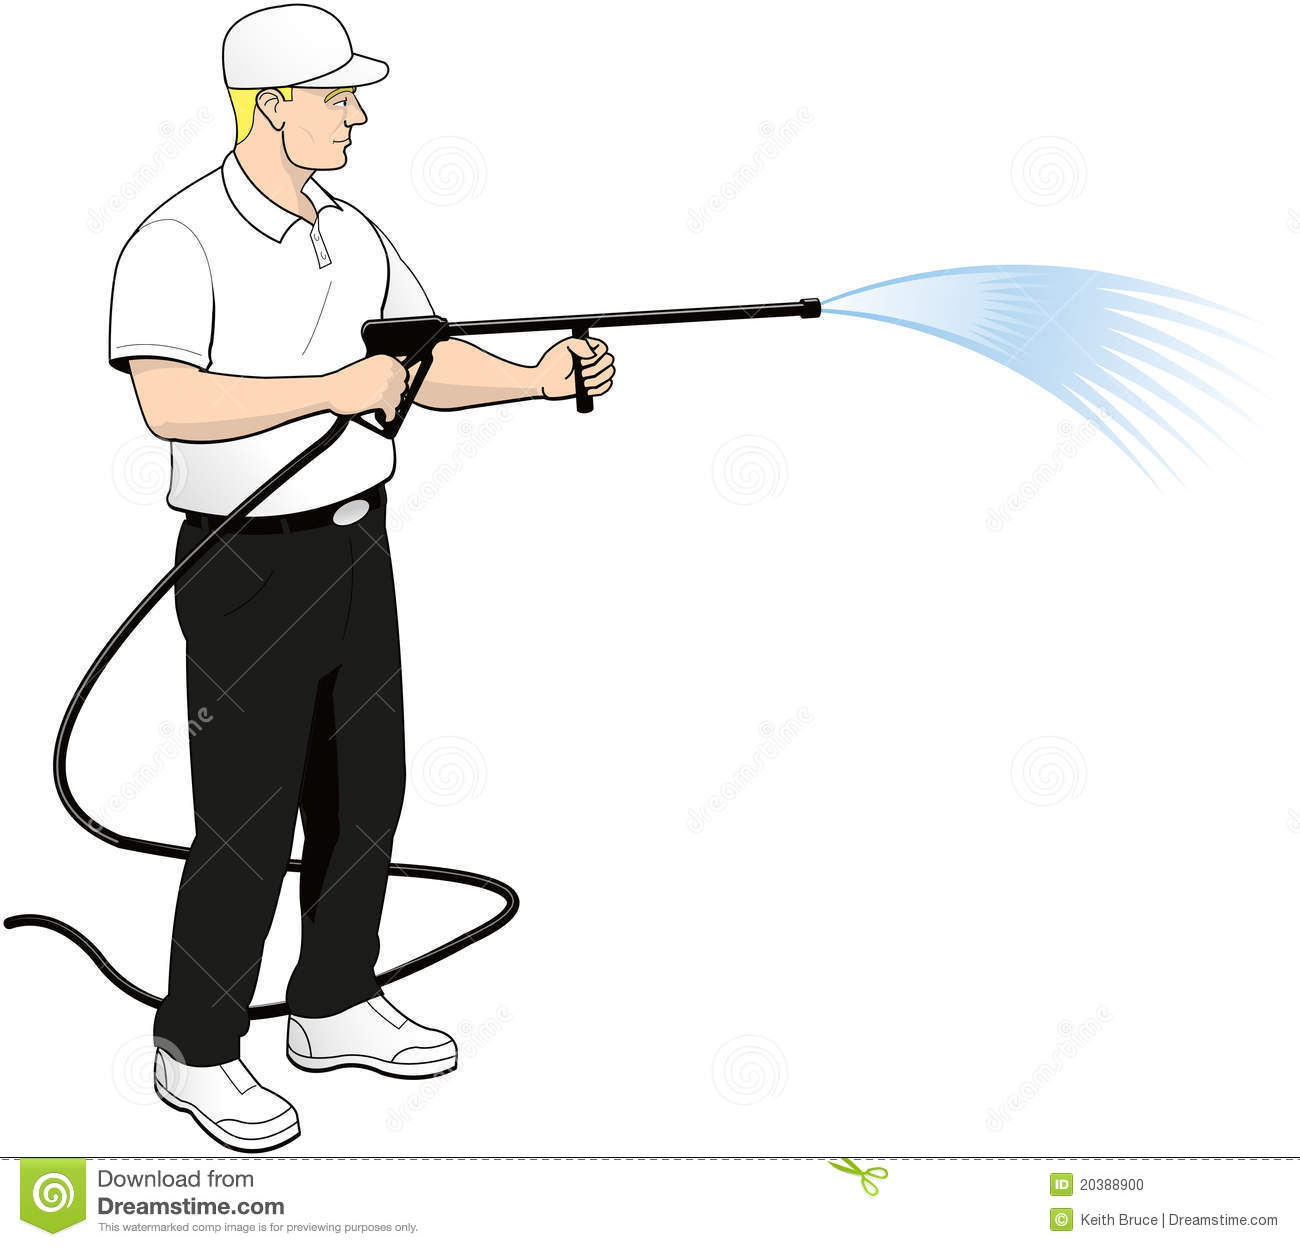 67+ Pressure Washing Clip Art.